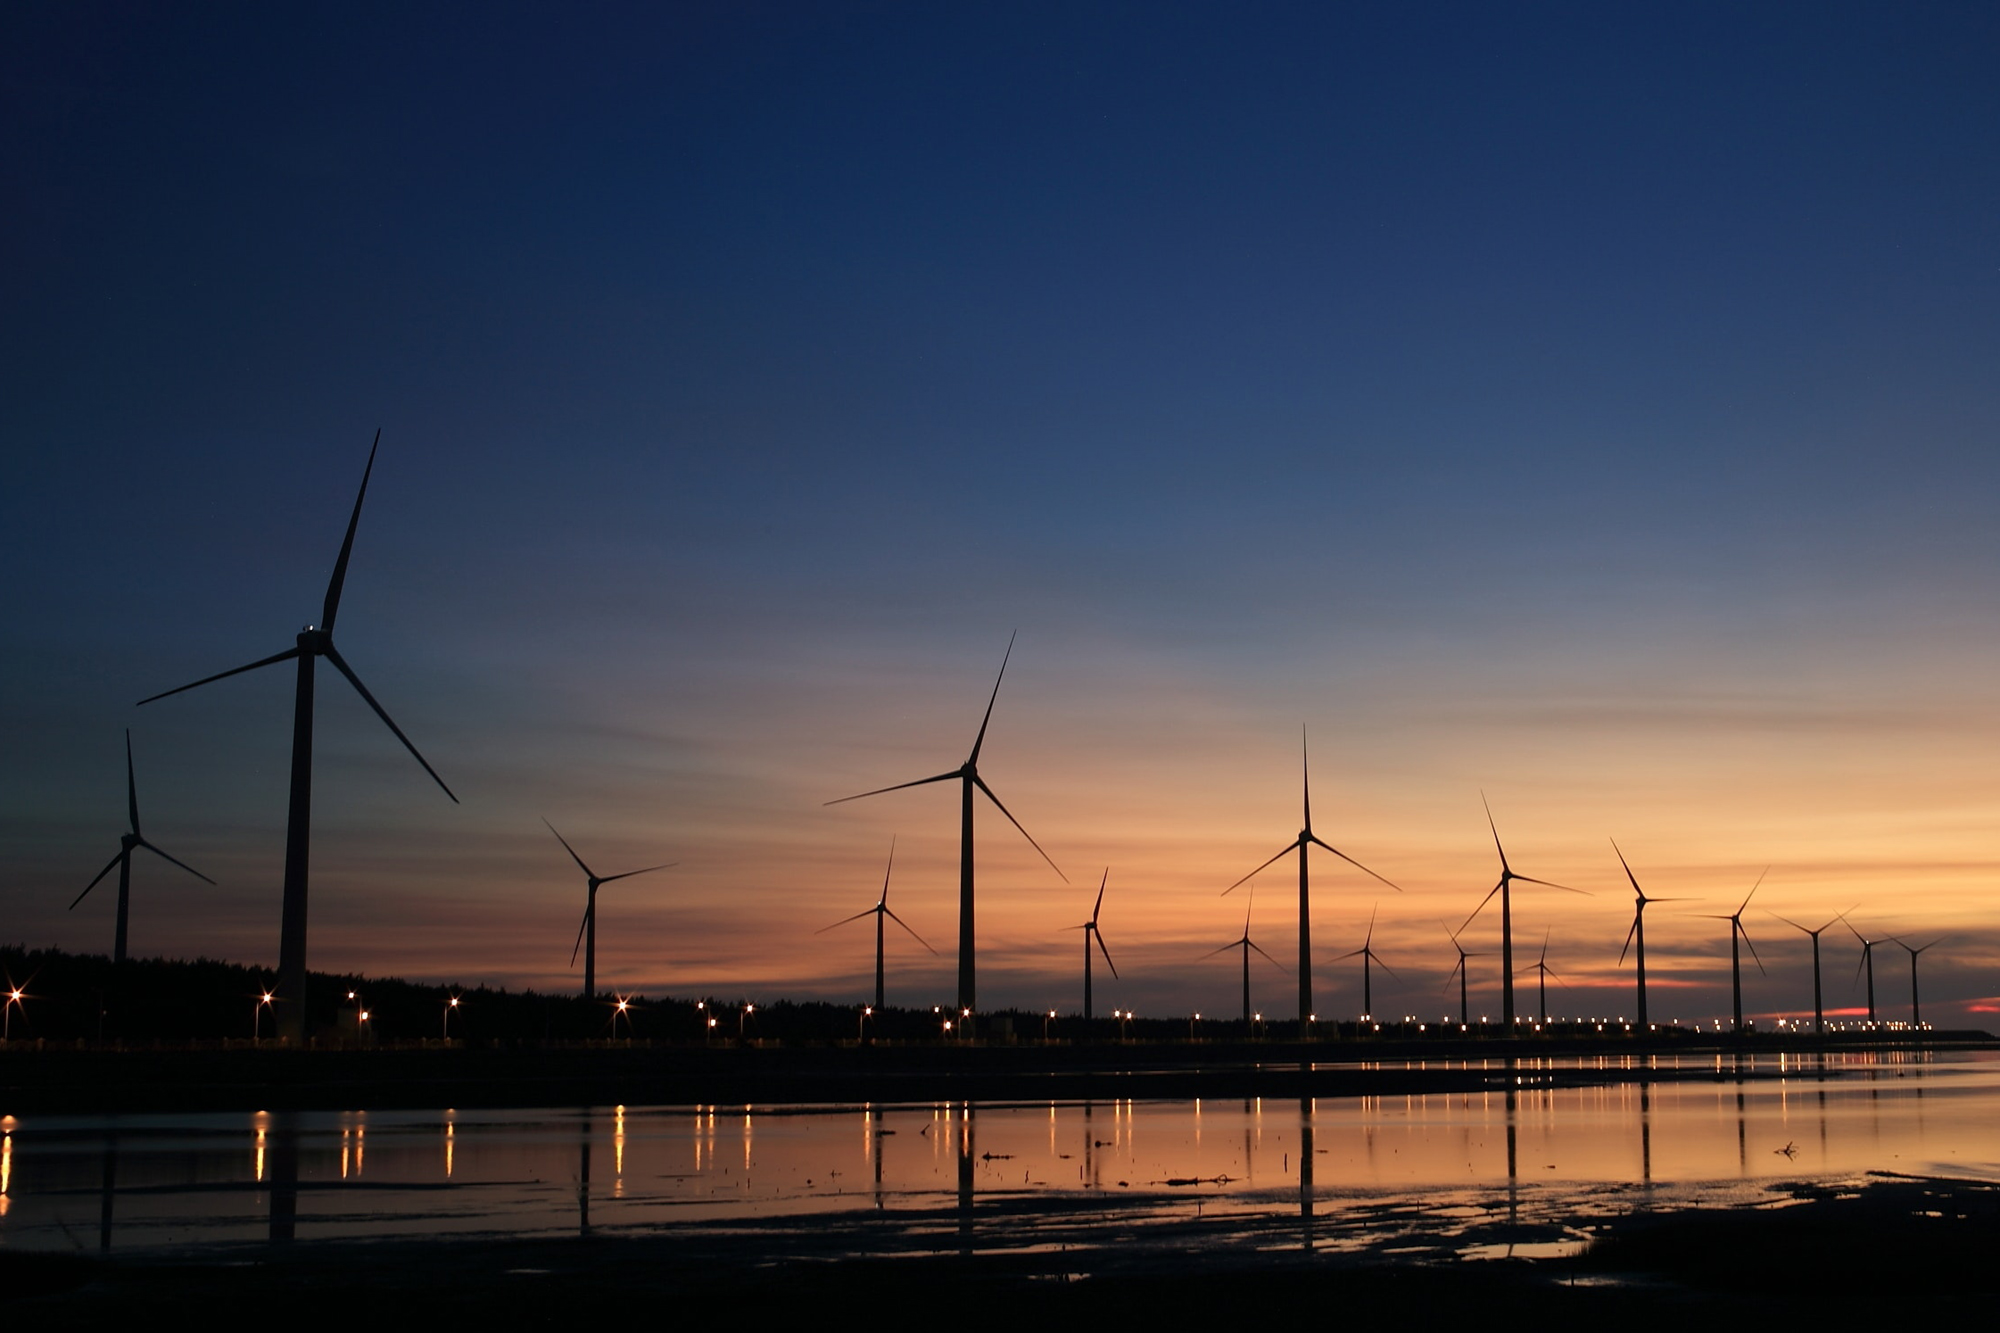 clouds-dawn-dusk-157039 Big Data and IoT to boost the wind industry